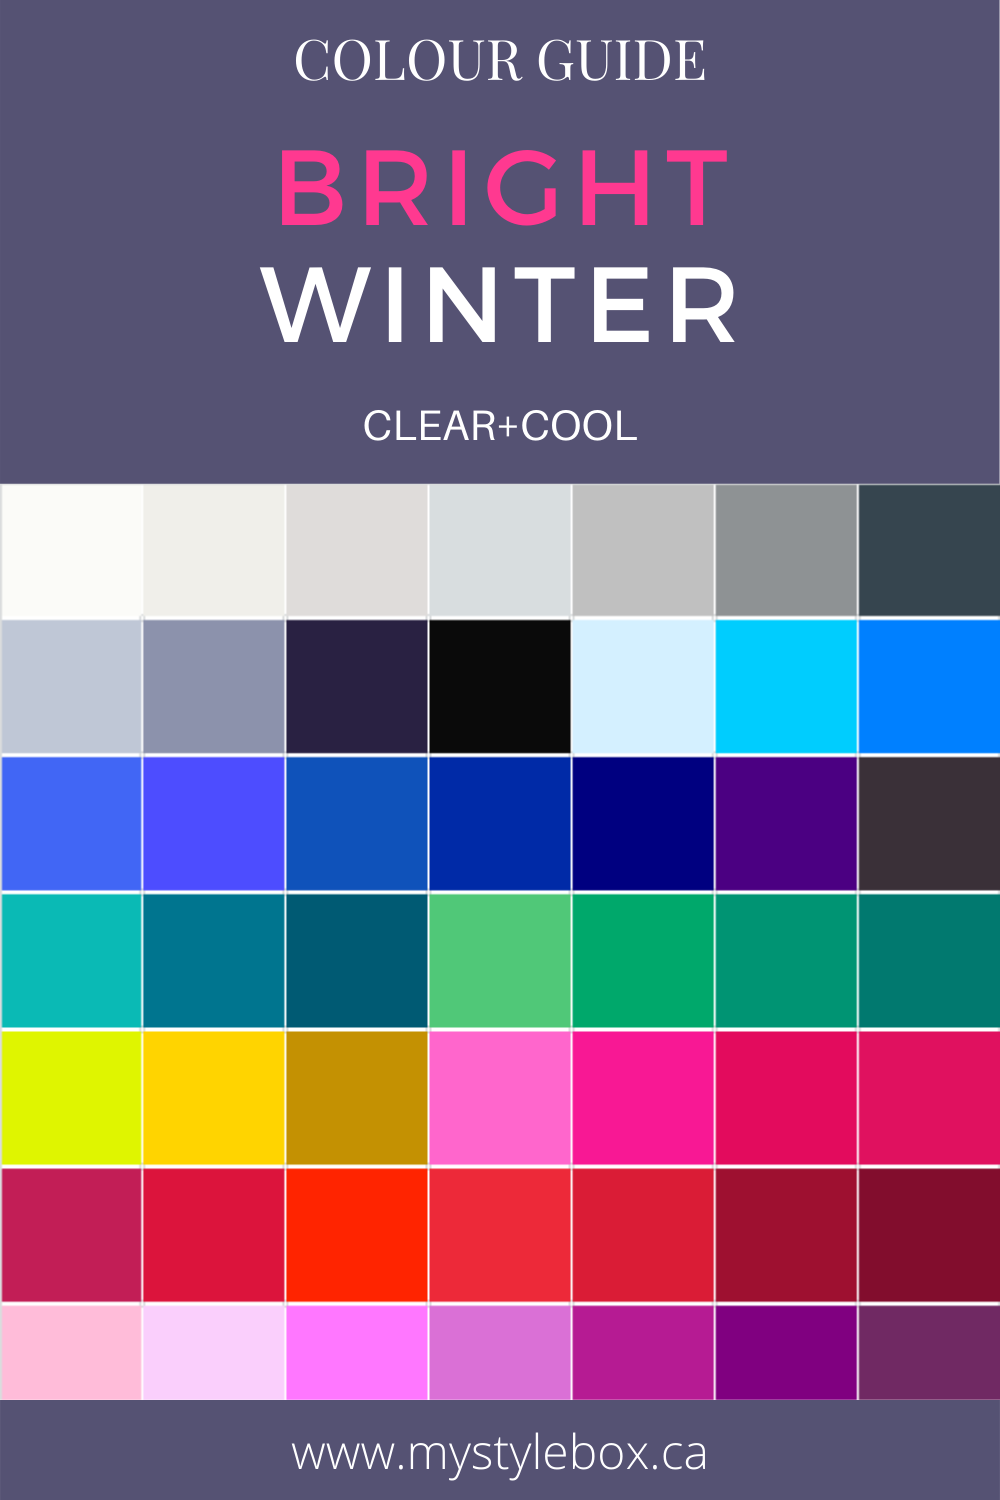 Bright Winter Colour Guide